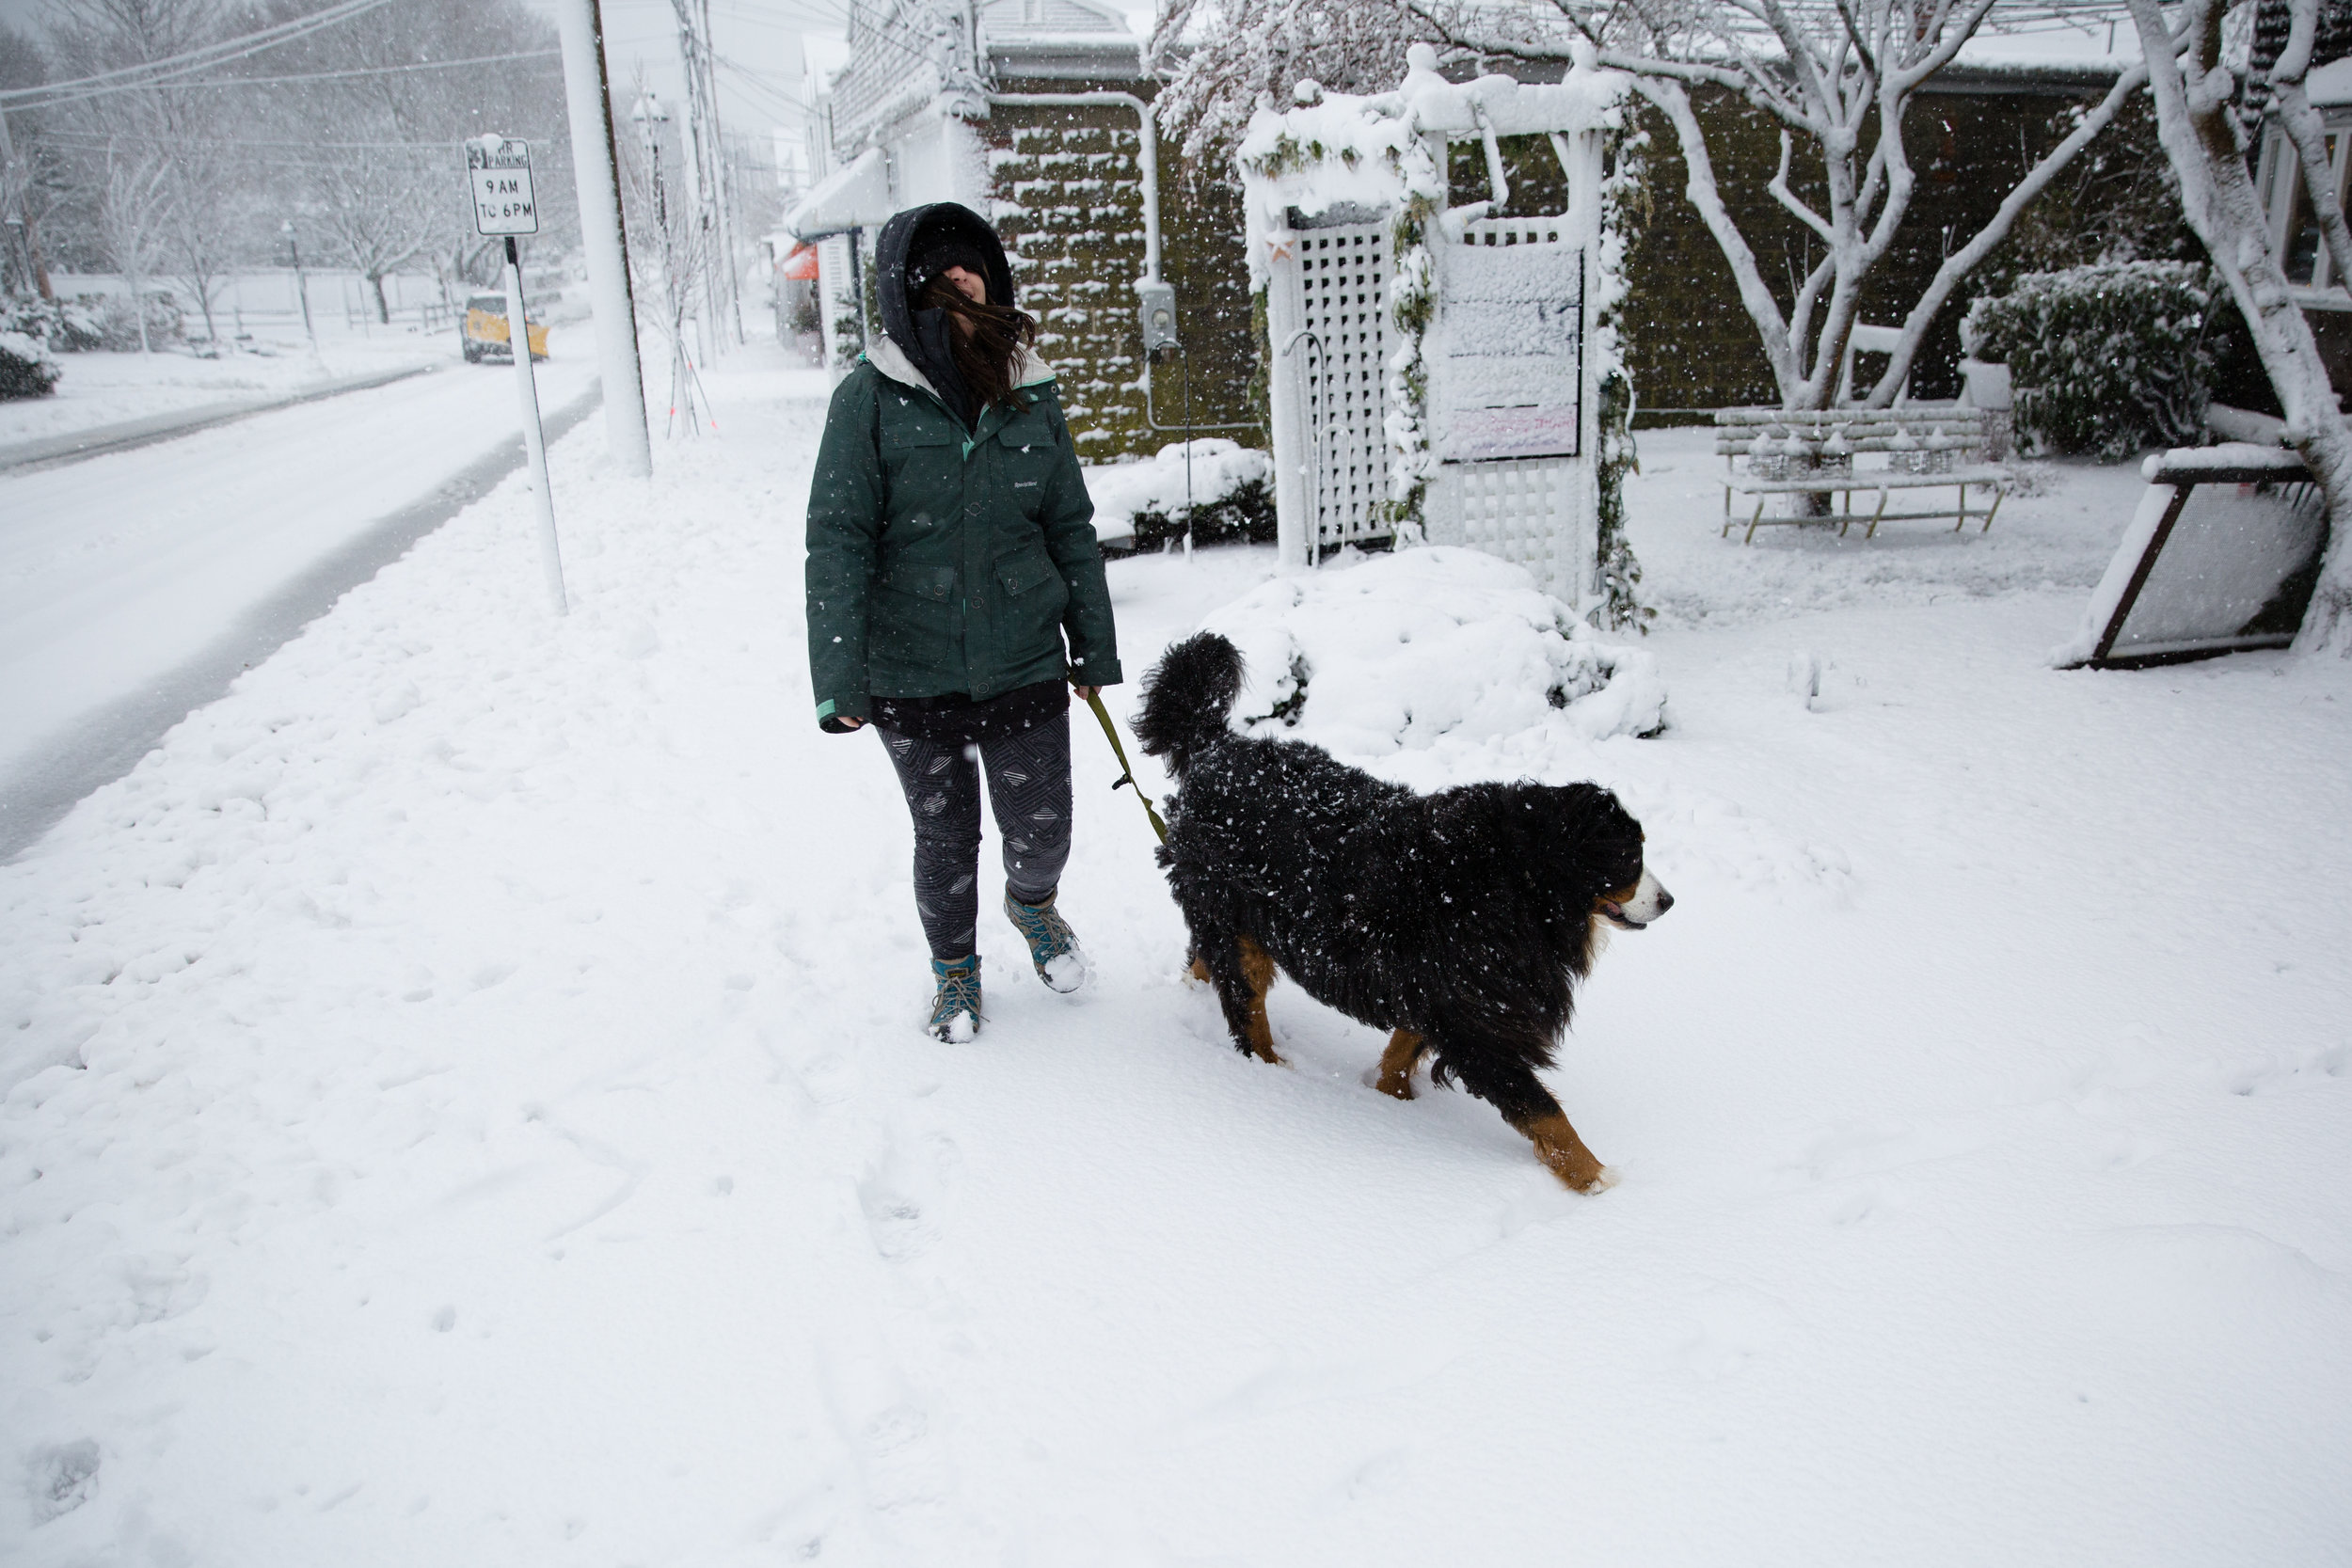 My wife and our dog, Natty, braving the storm in Padanaram Village.